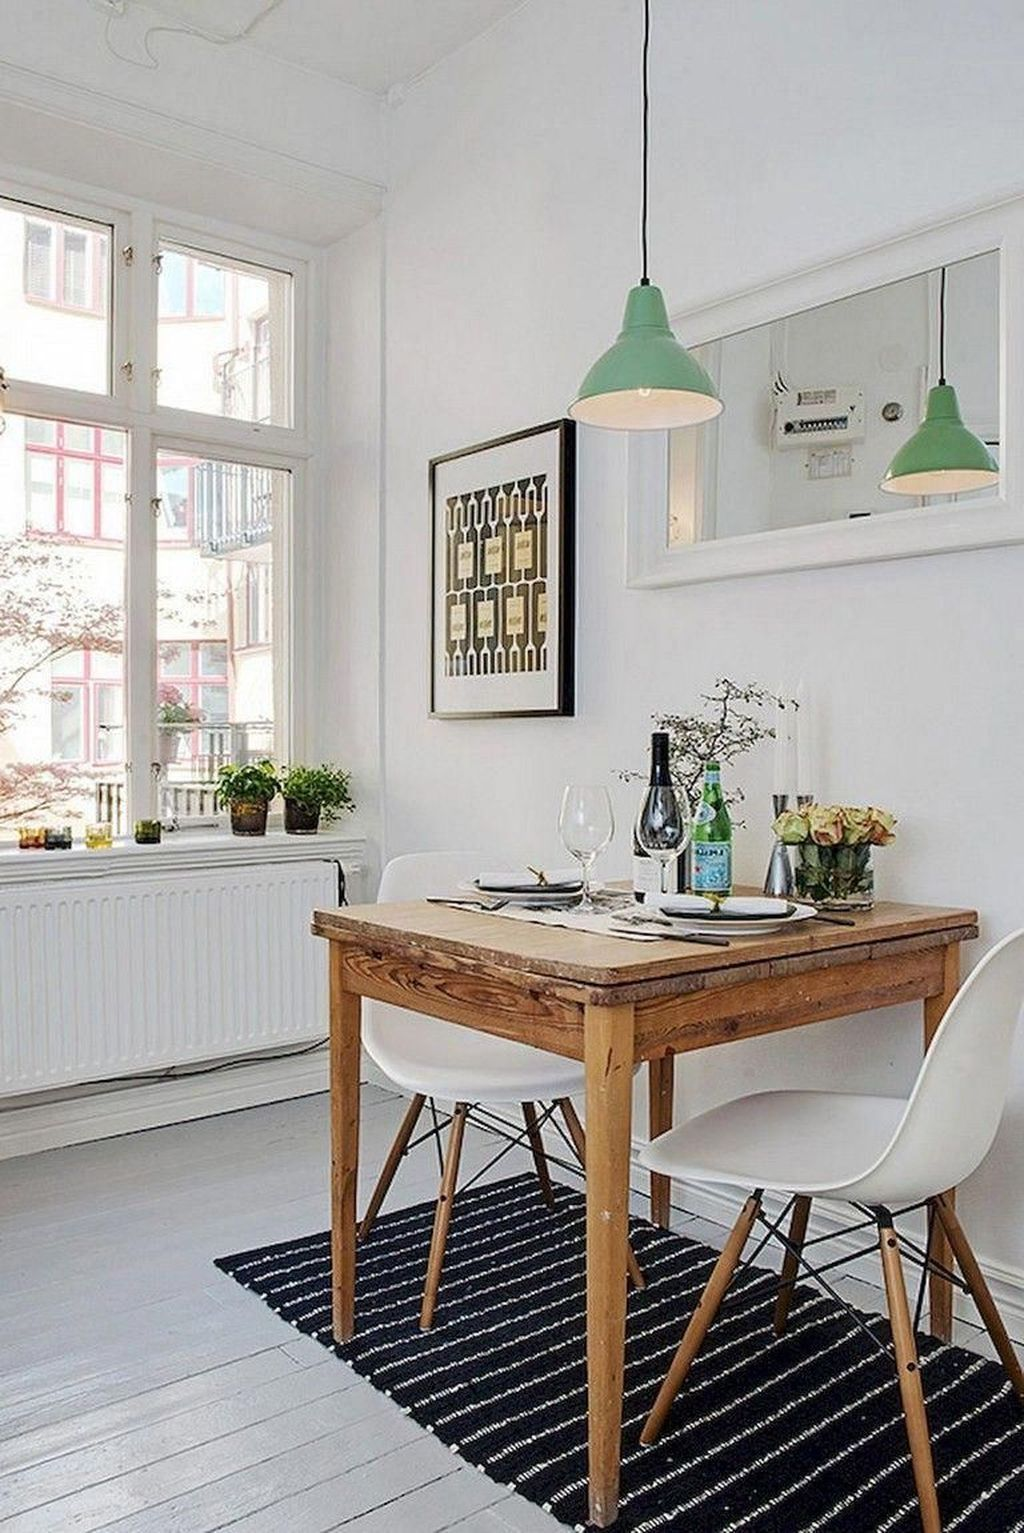 38 Beautiful Small Dining Room Design Ideas For Apartments With